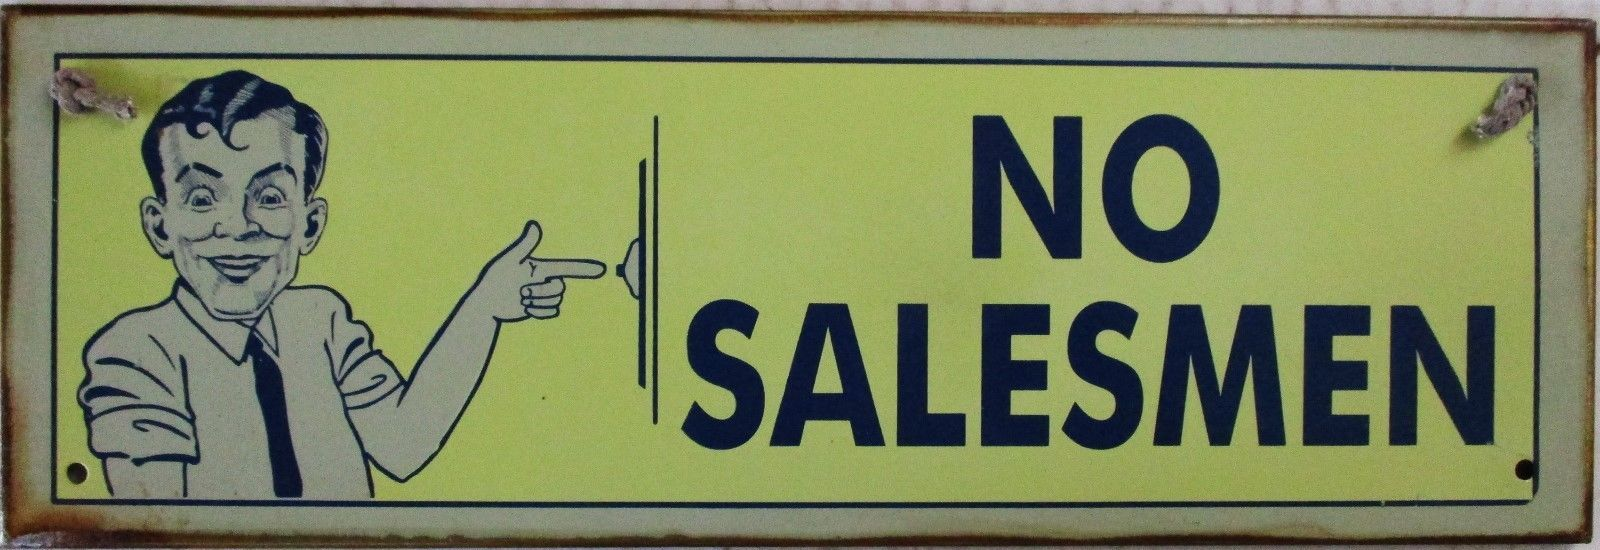 No Salesmen Metal Sign